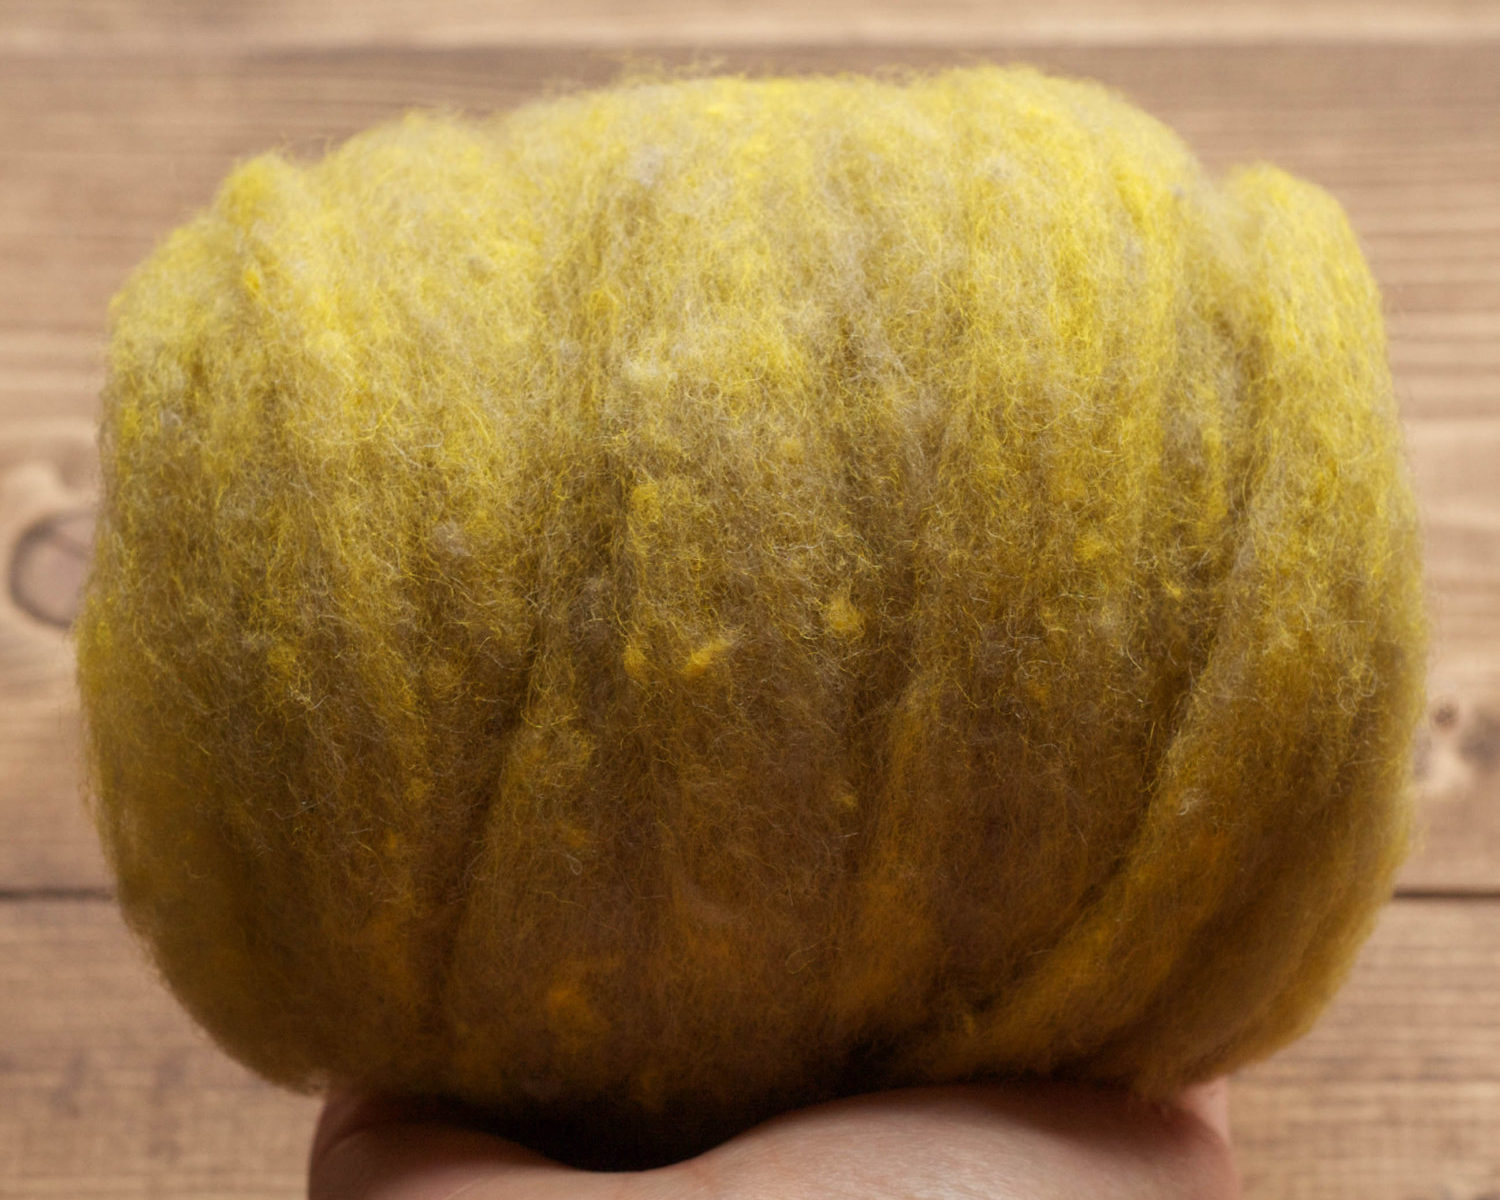 Meadow Needle Felting Wool, Wool Batting, Batts, Fleece, Wet Felting, Spinning, Dyed Felting Wool, Citron, Yellow Green, Fiber Art Supplies